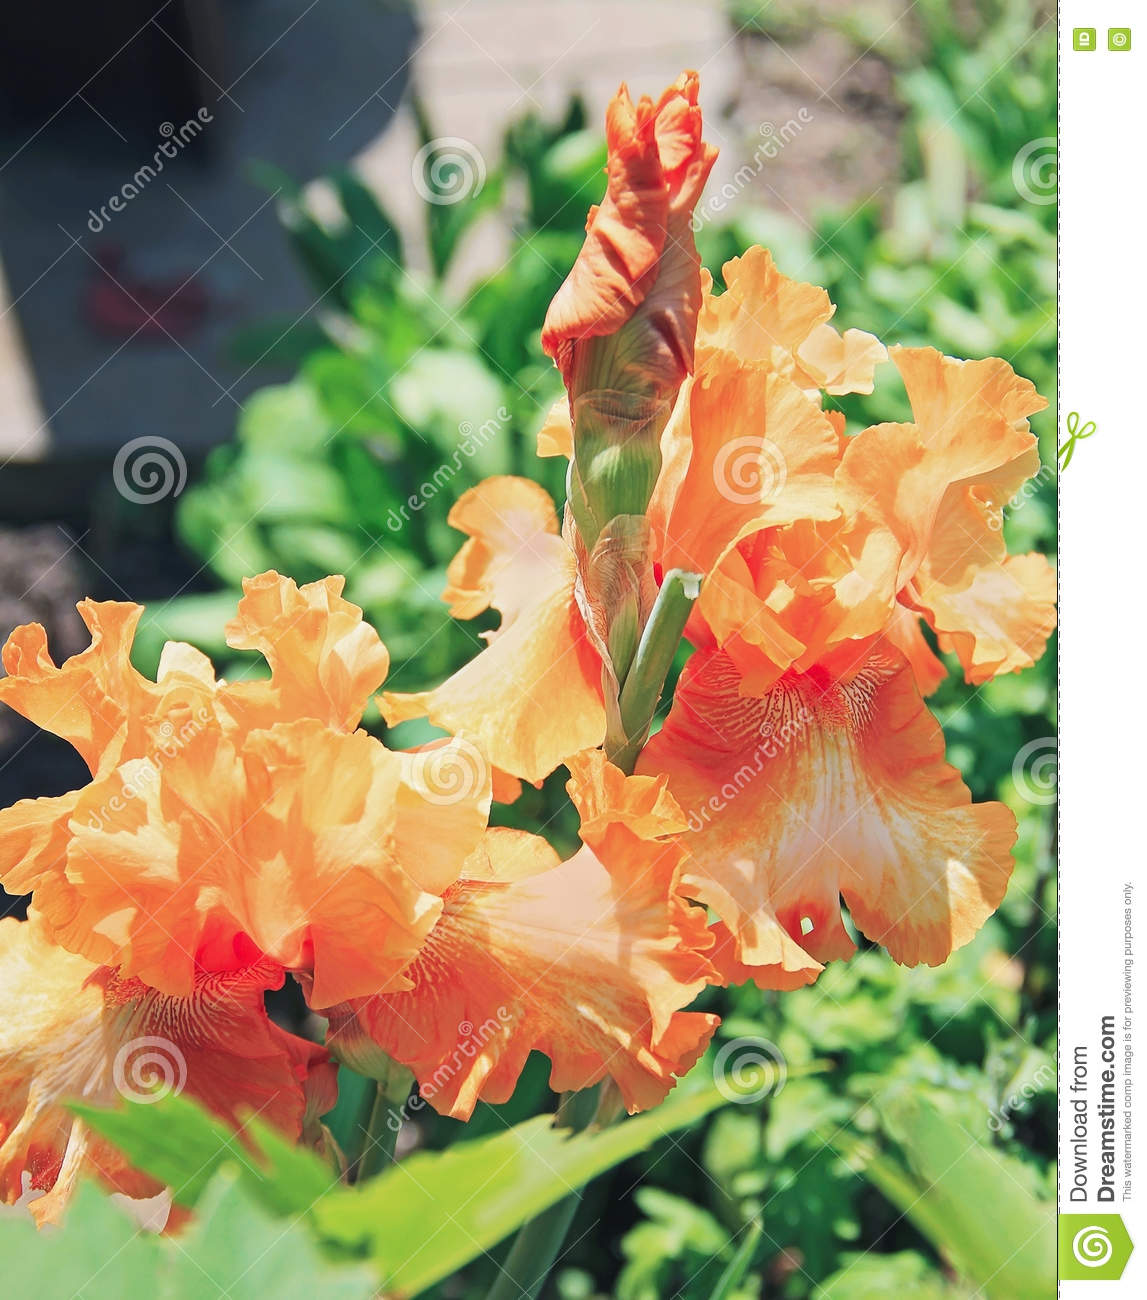 Iris Yellow Orange Flower Plant Latin Name Iris Outdoors Stock